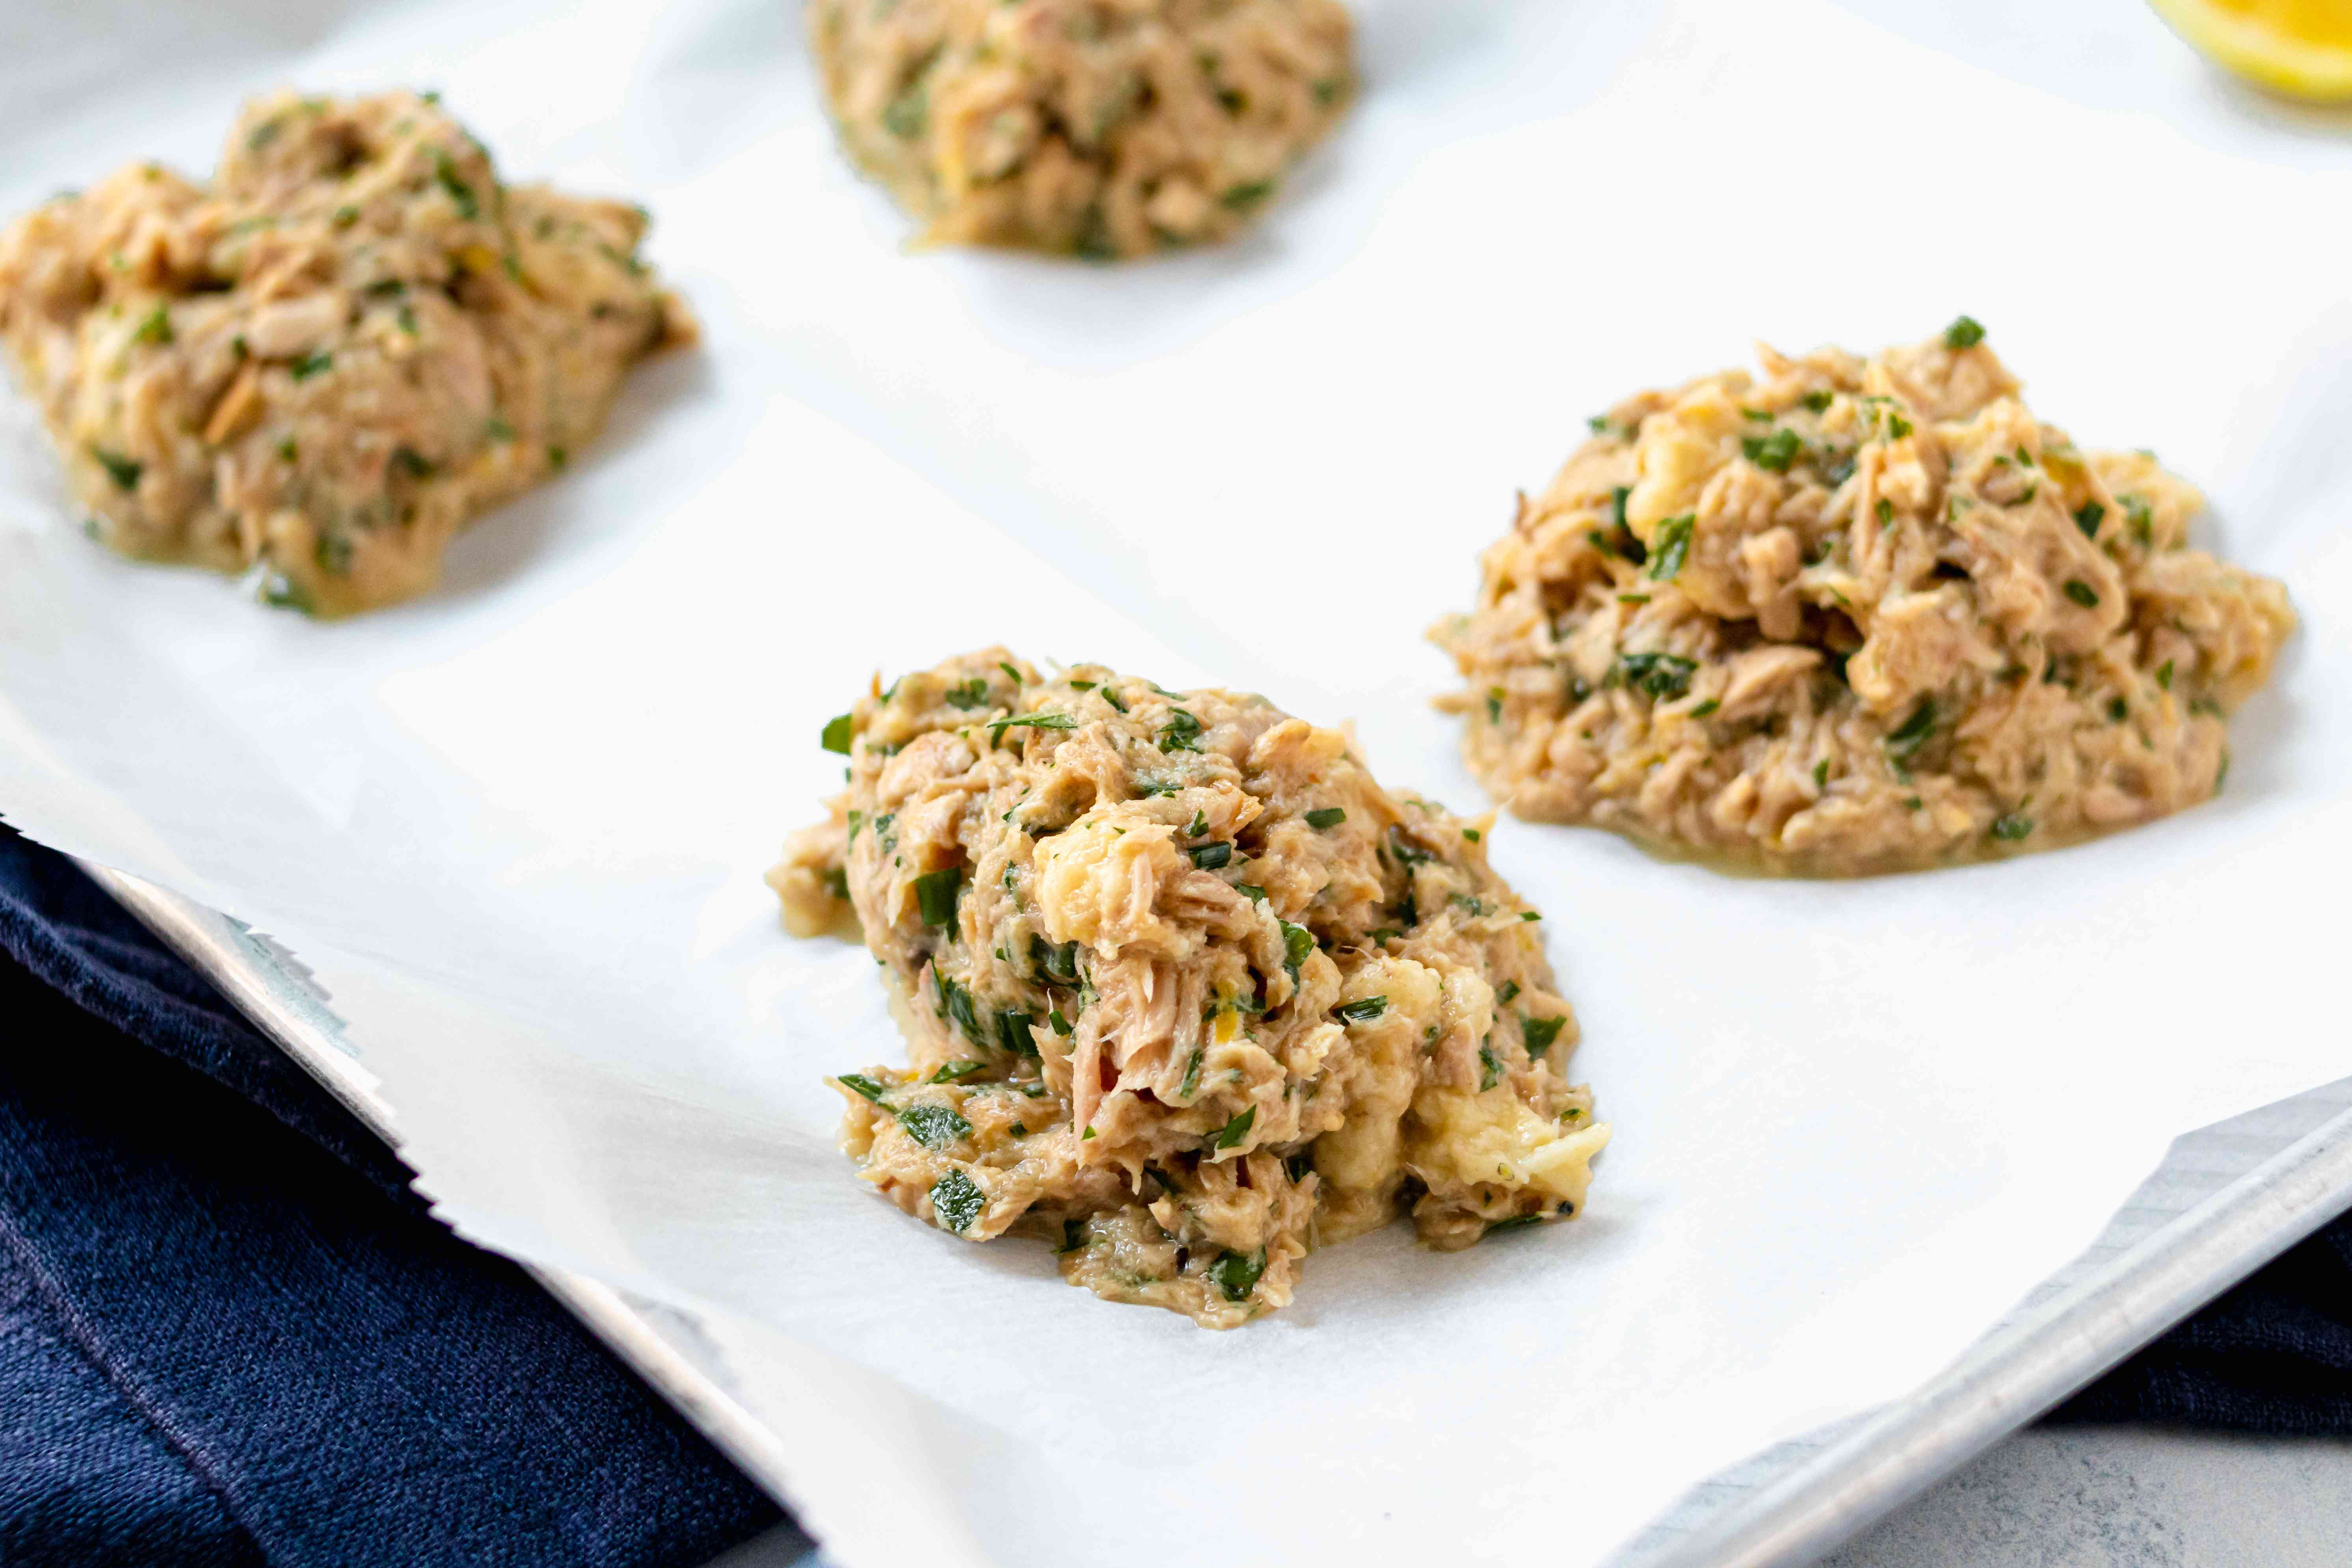 Tuna patties scooped on parchment paper to show how to make tuna fish.